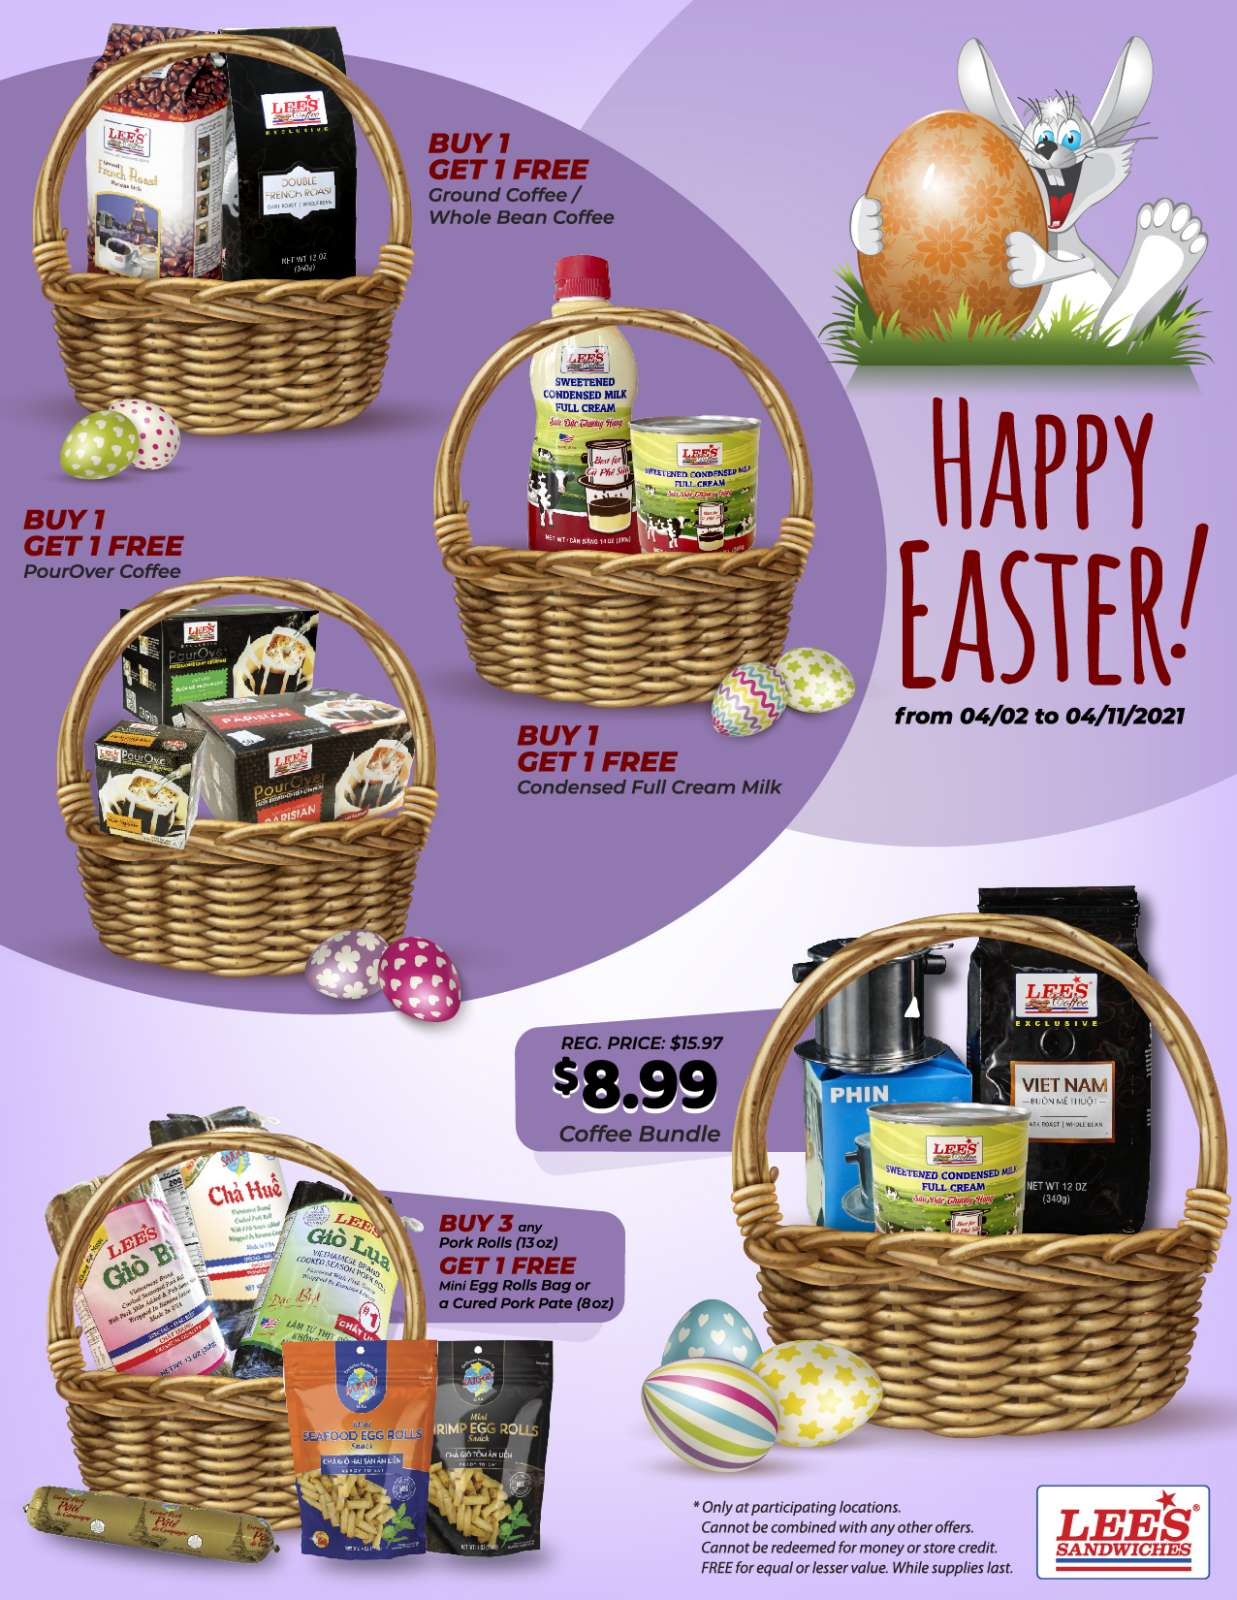 Happy Easter Promotion only from 4/2 to 4/11/2021!